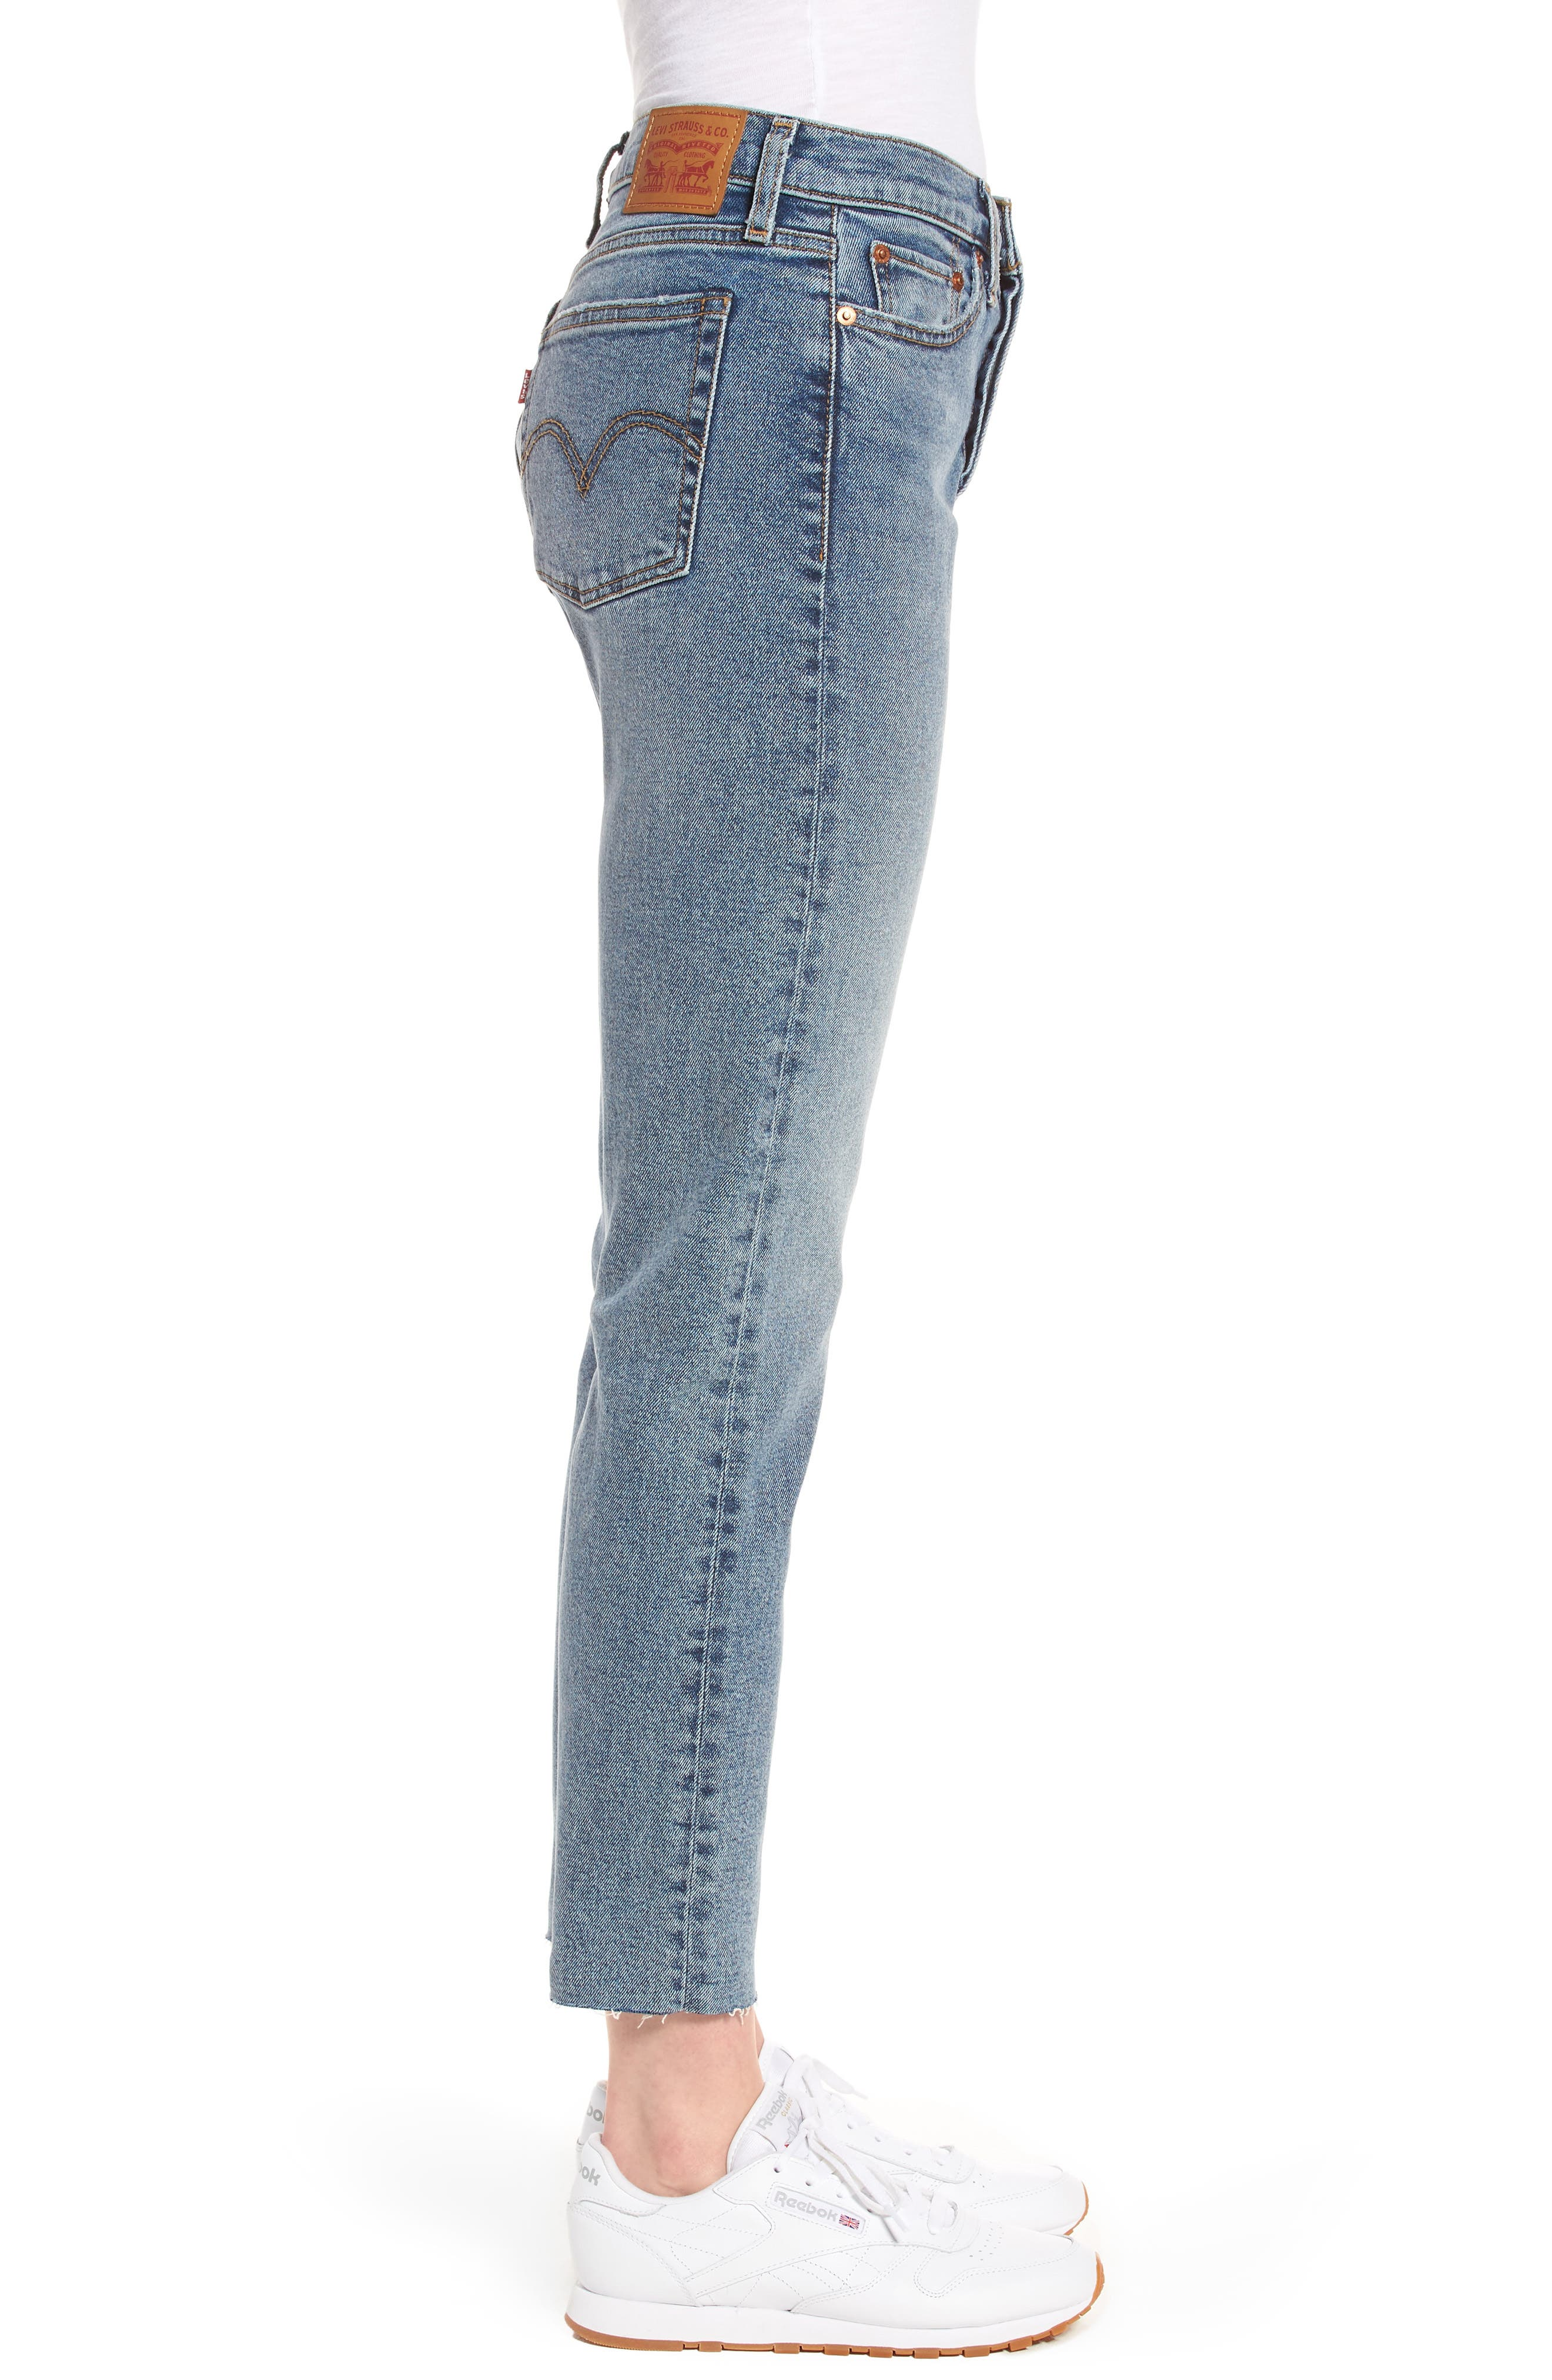 Wedgie Icon Fit High Waist Crop Jeans,                             Alternate thumbnail 3, color,                             401